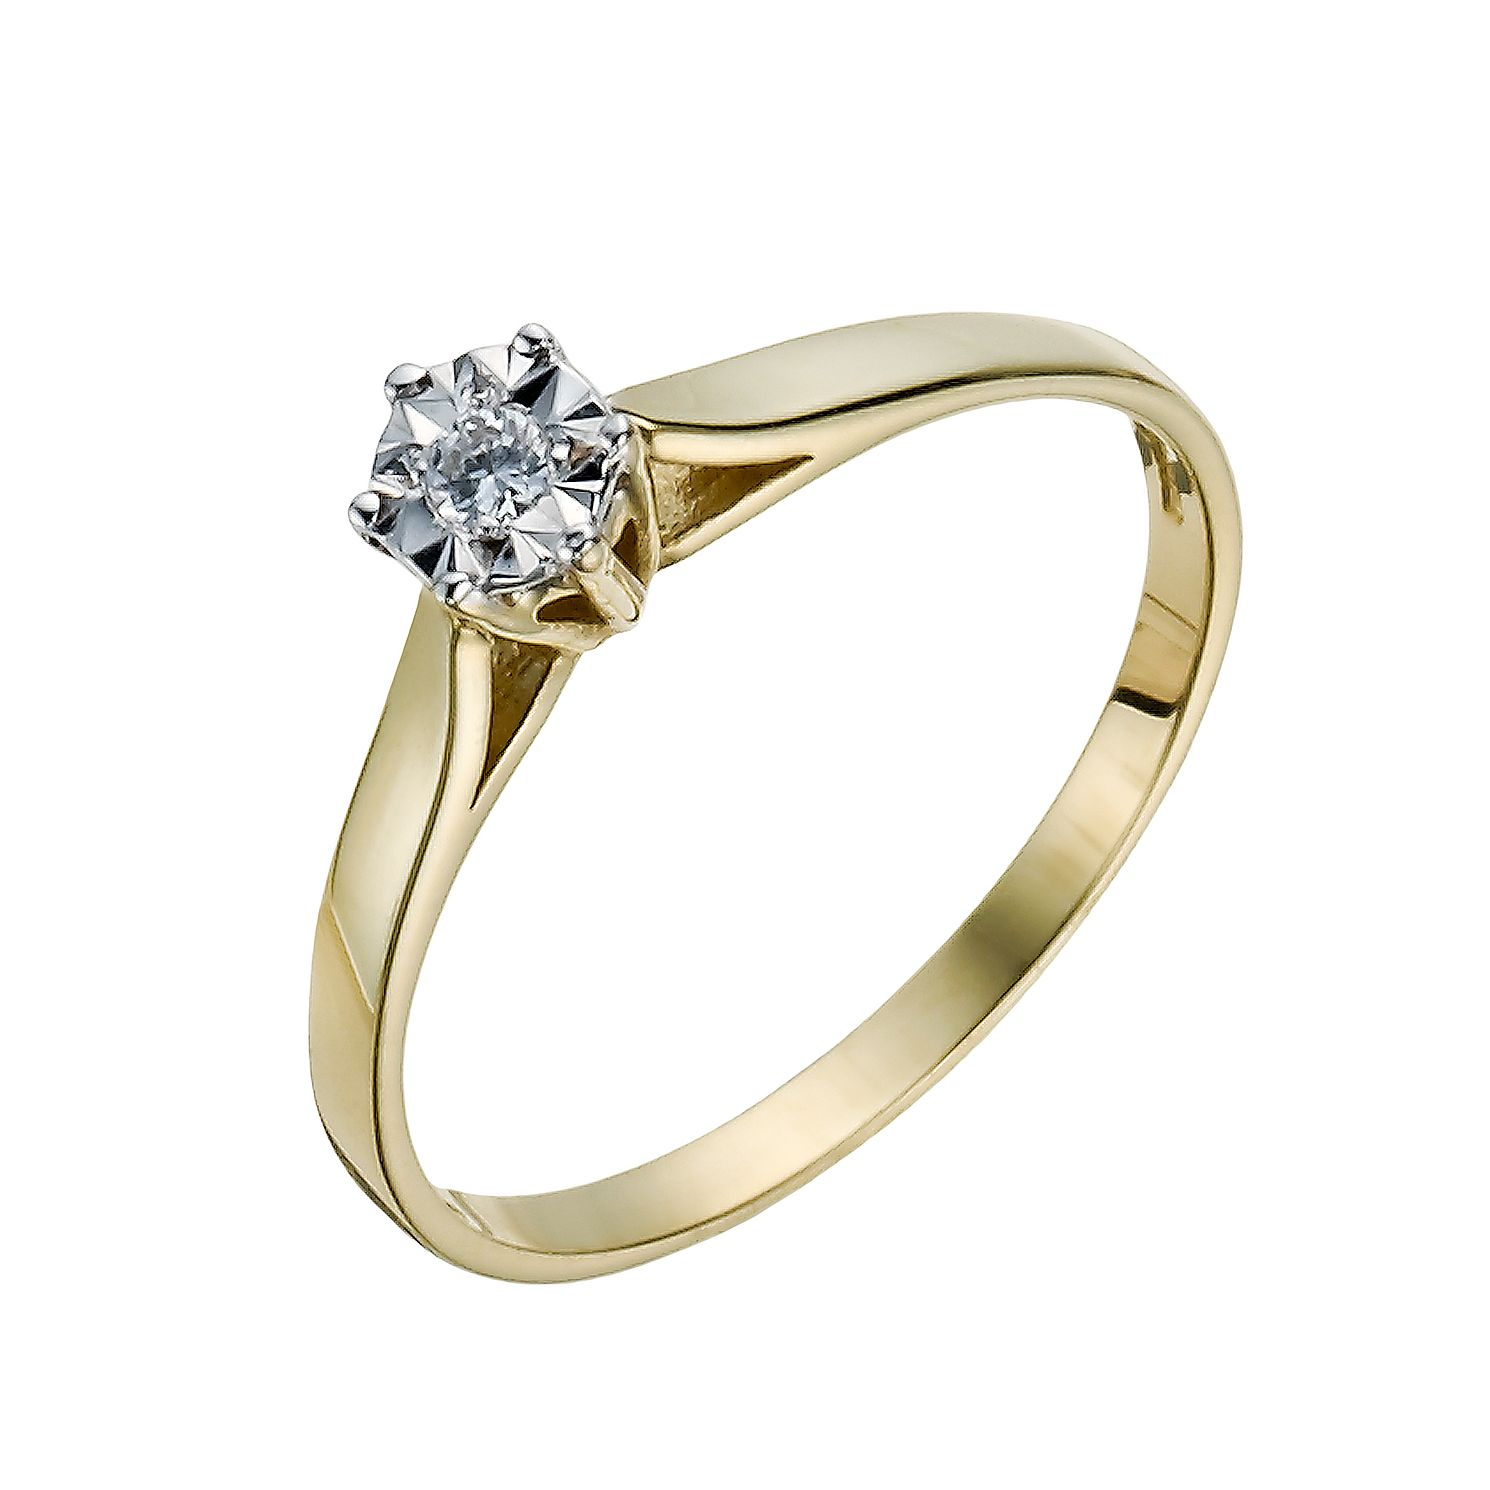 9ct Gold Diamond 6 Claw Illusion Solitaire Ring - Product number 1284517